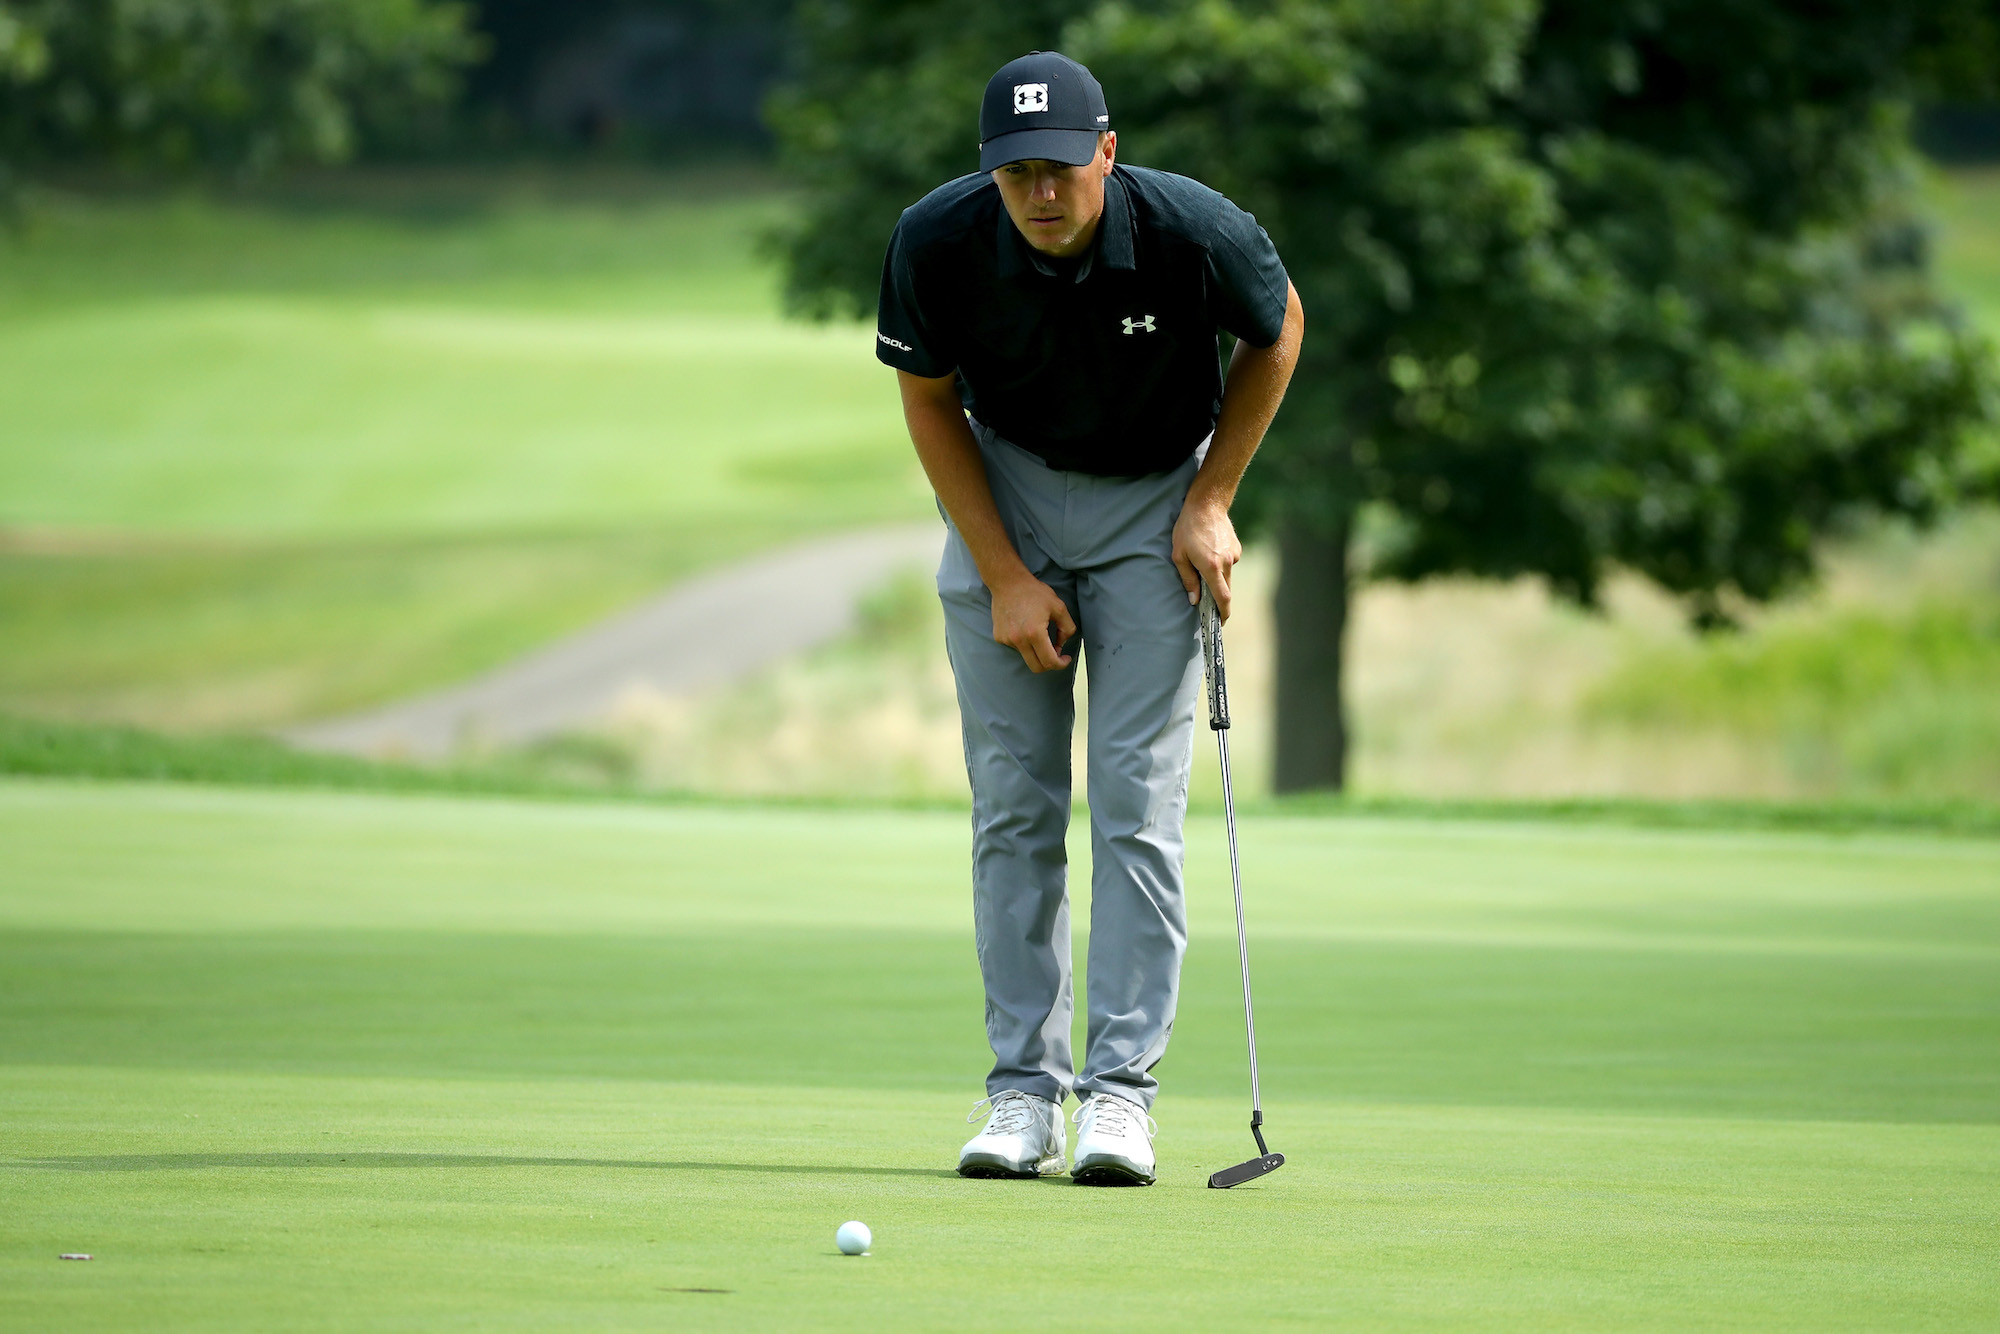 2018 WGC-Bridgestone Invitational: Round 1 - Lining Up a Putt on No. 5